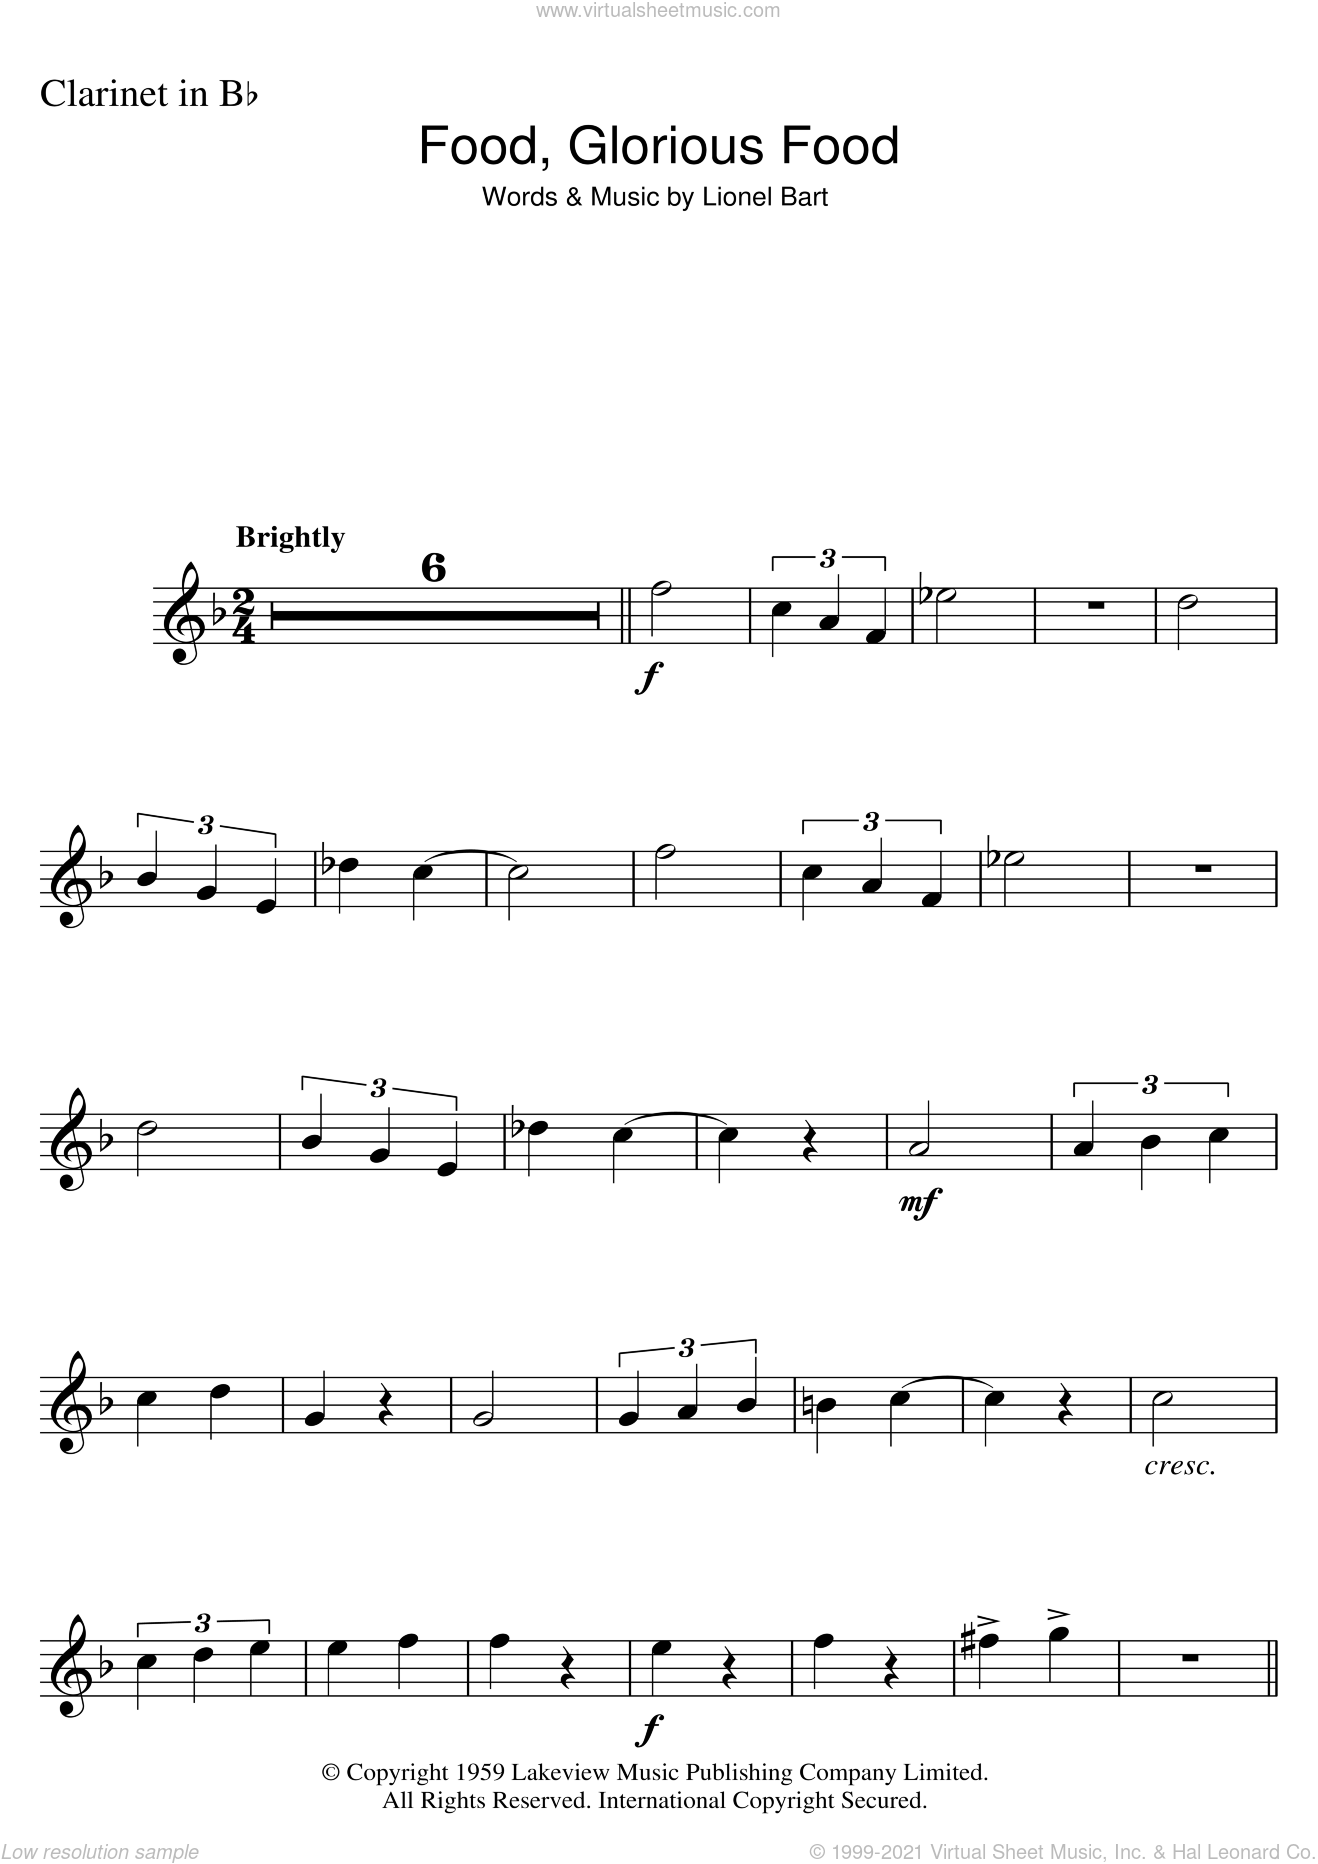 Food, Glorious Food (from Oliver!) sheet music for clarinet solo by Lionel Bart, intermediate skill level